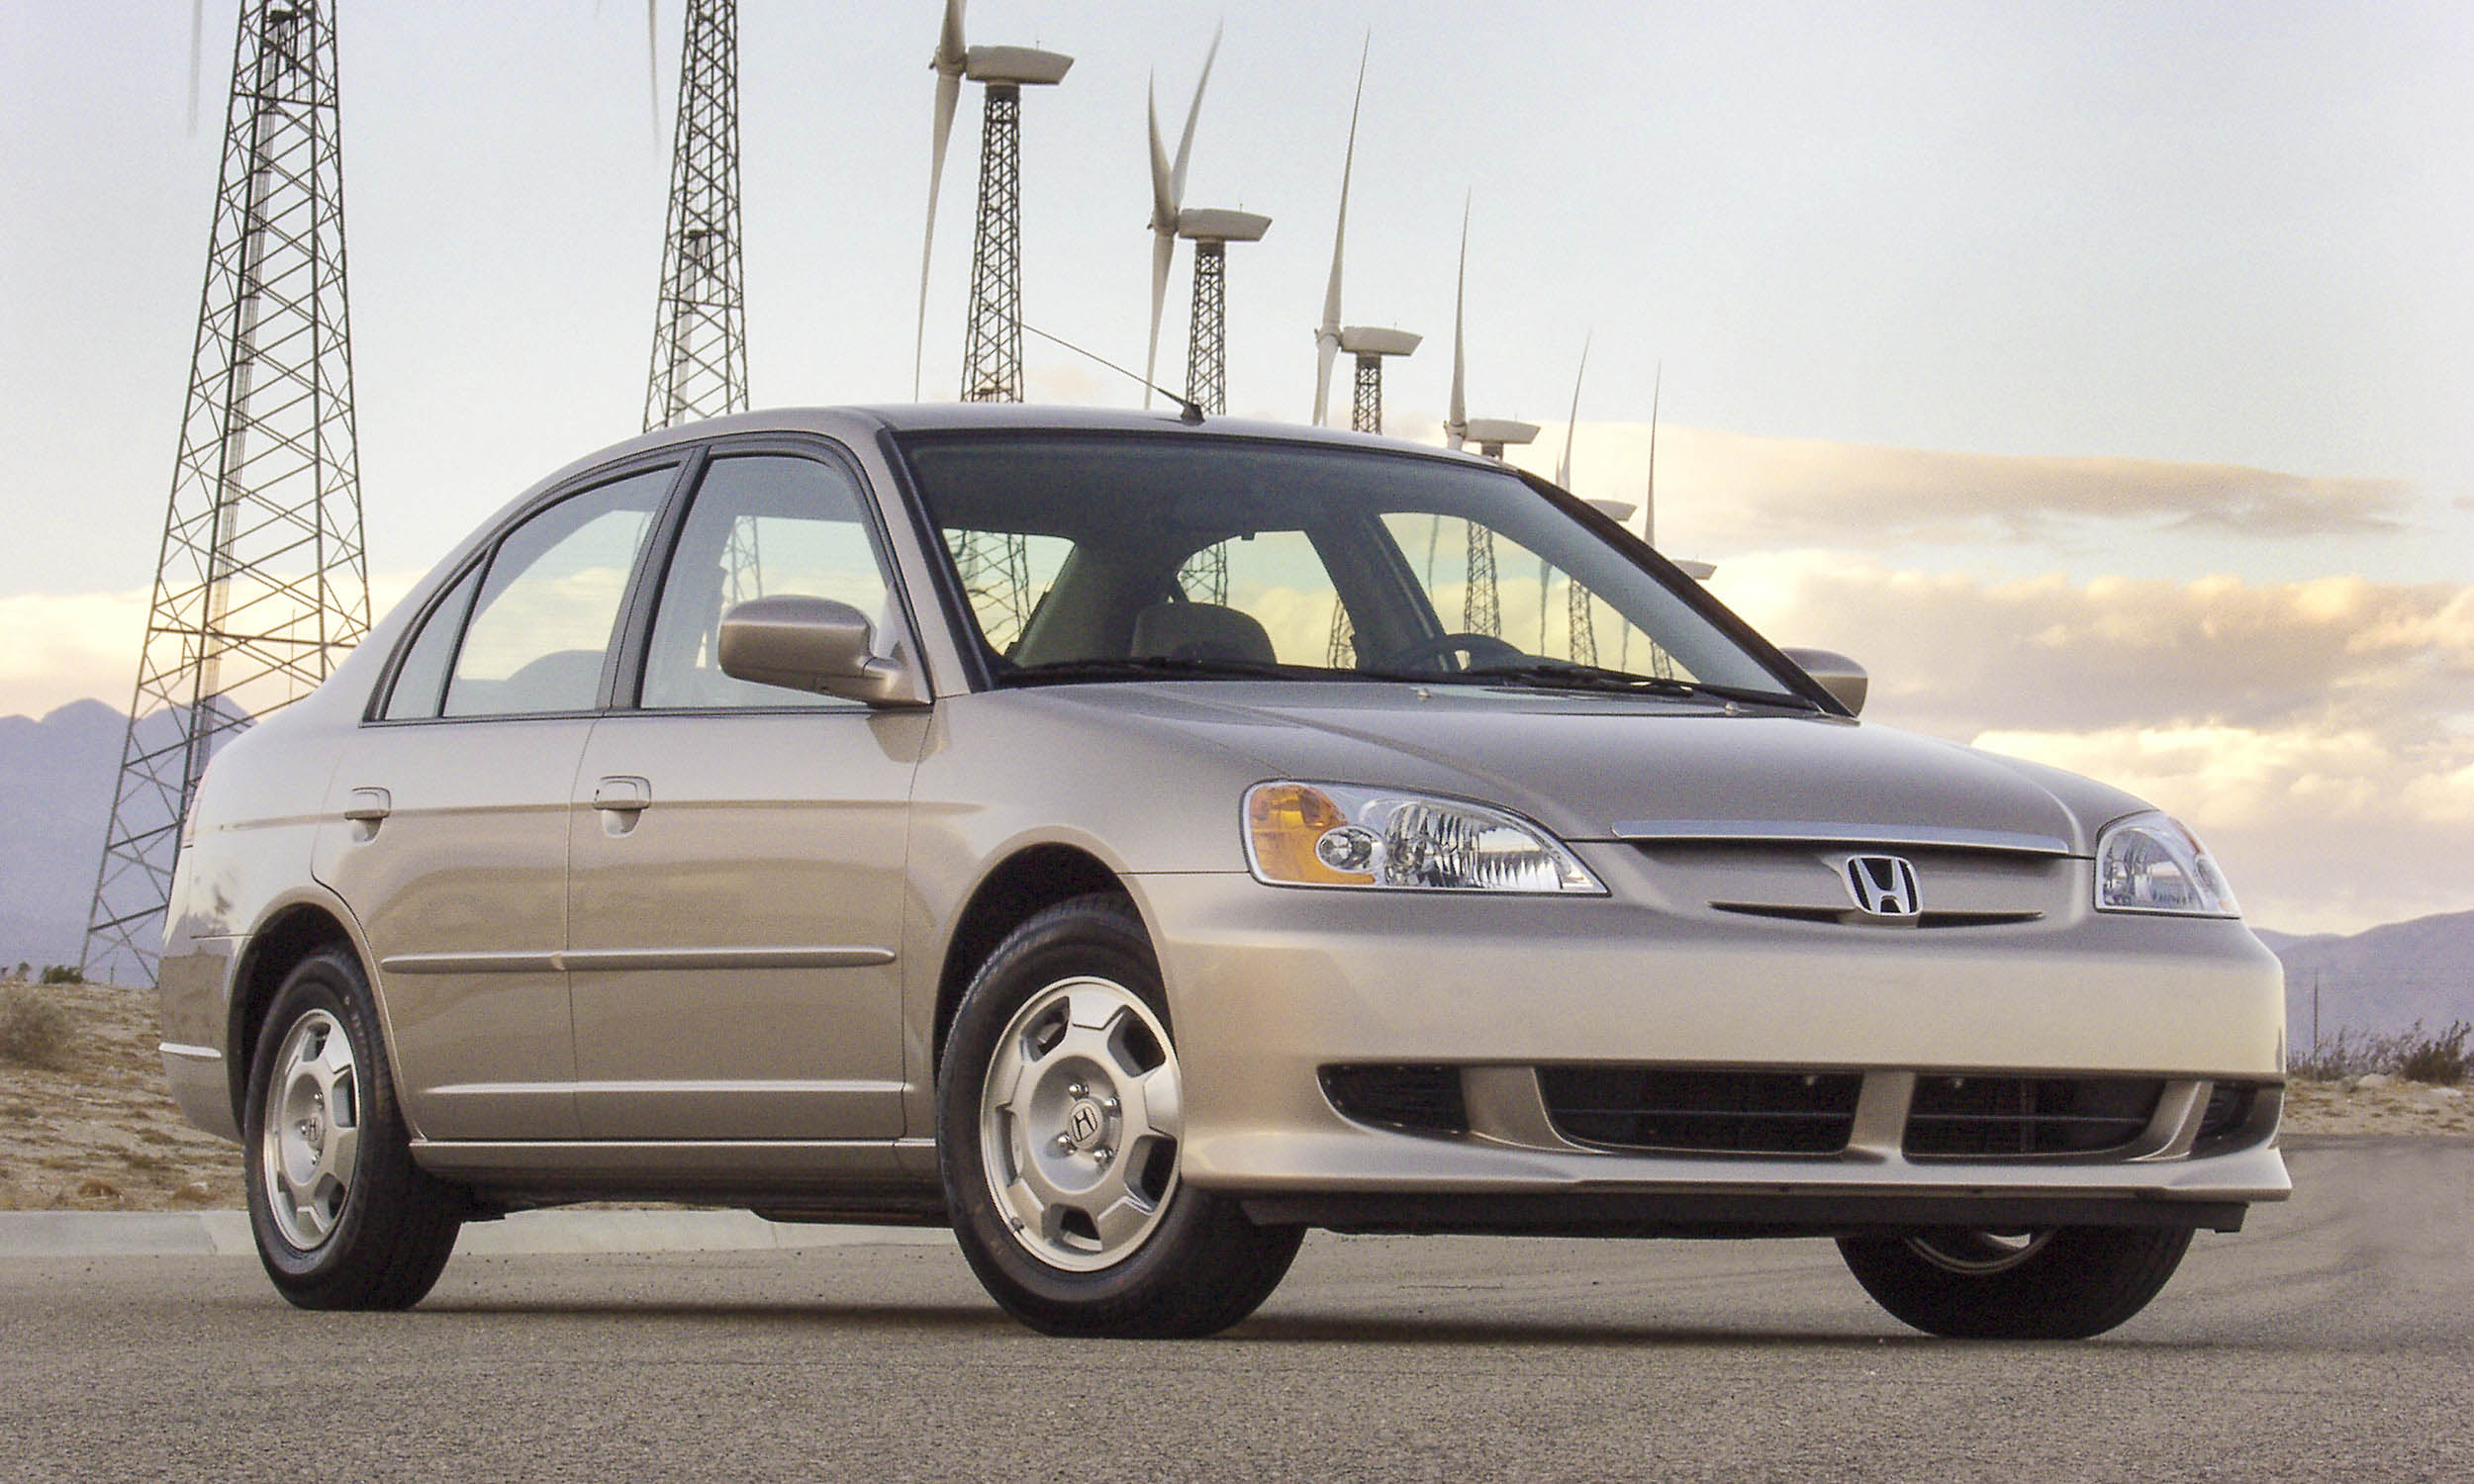 American Honda Motor Co., Inc 2003u20132005 Honda Civic Hybrid